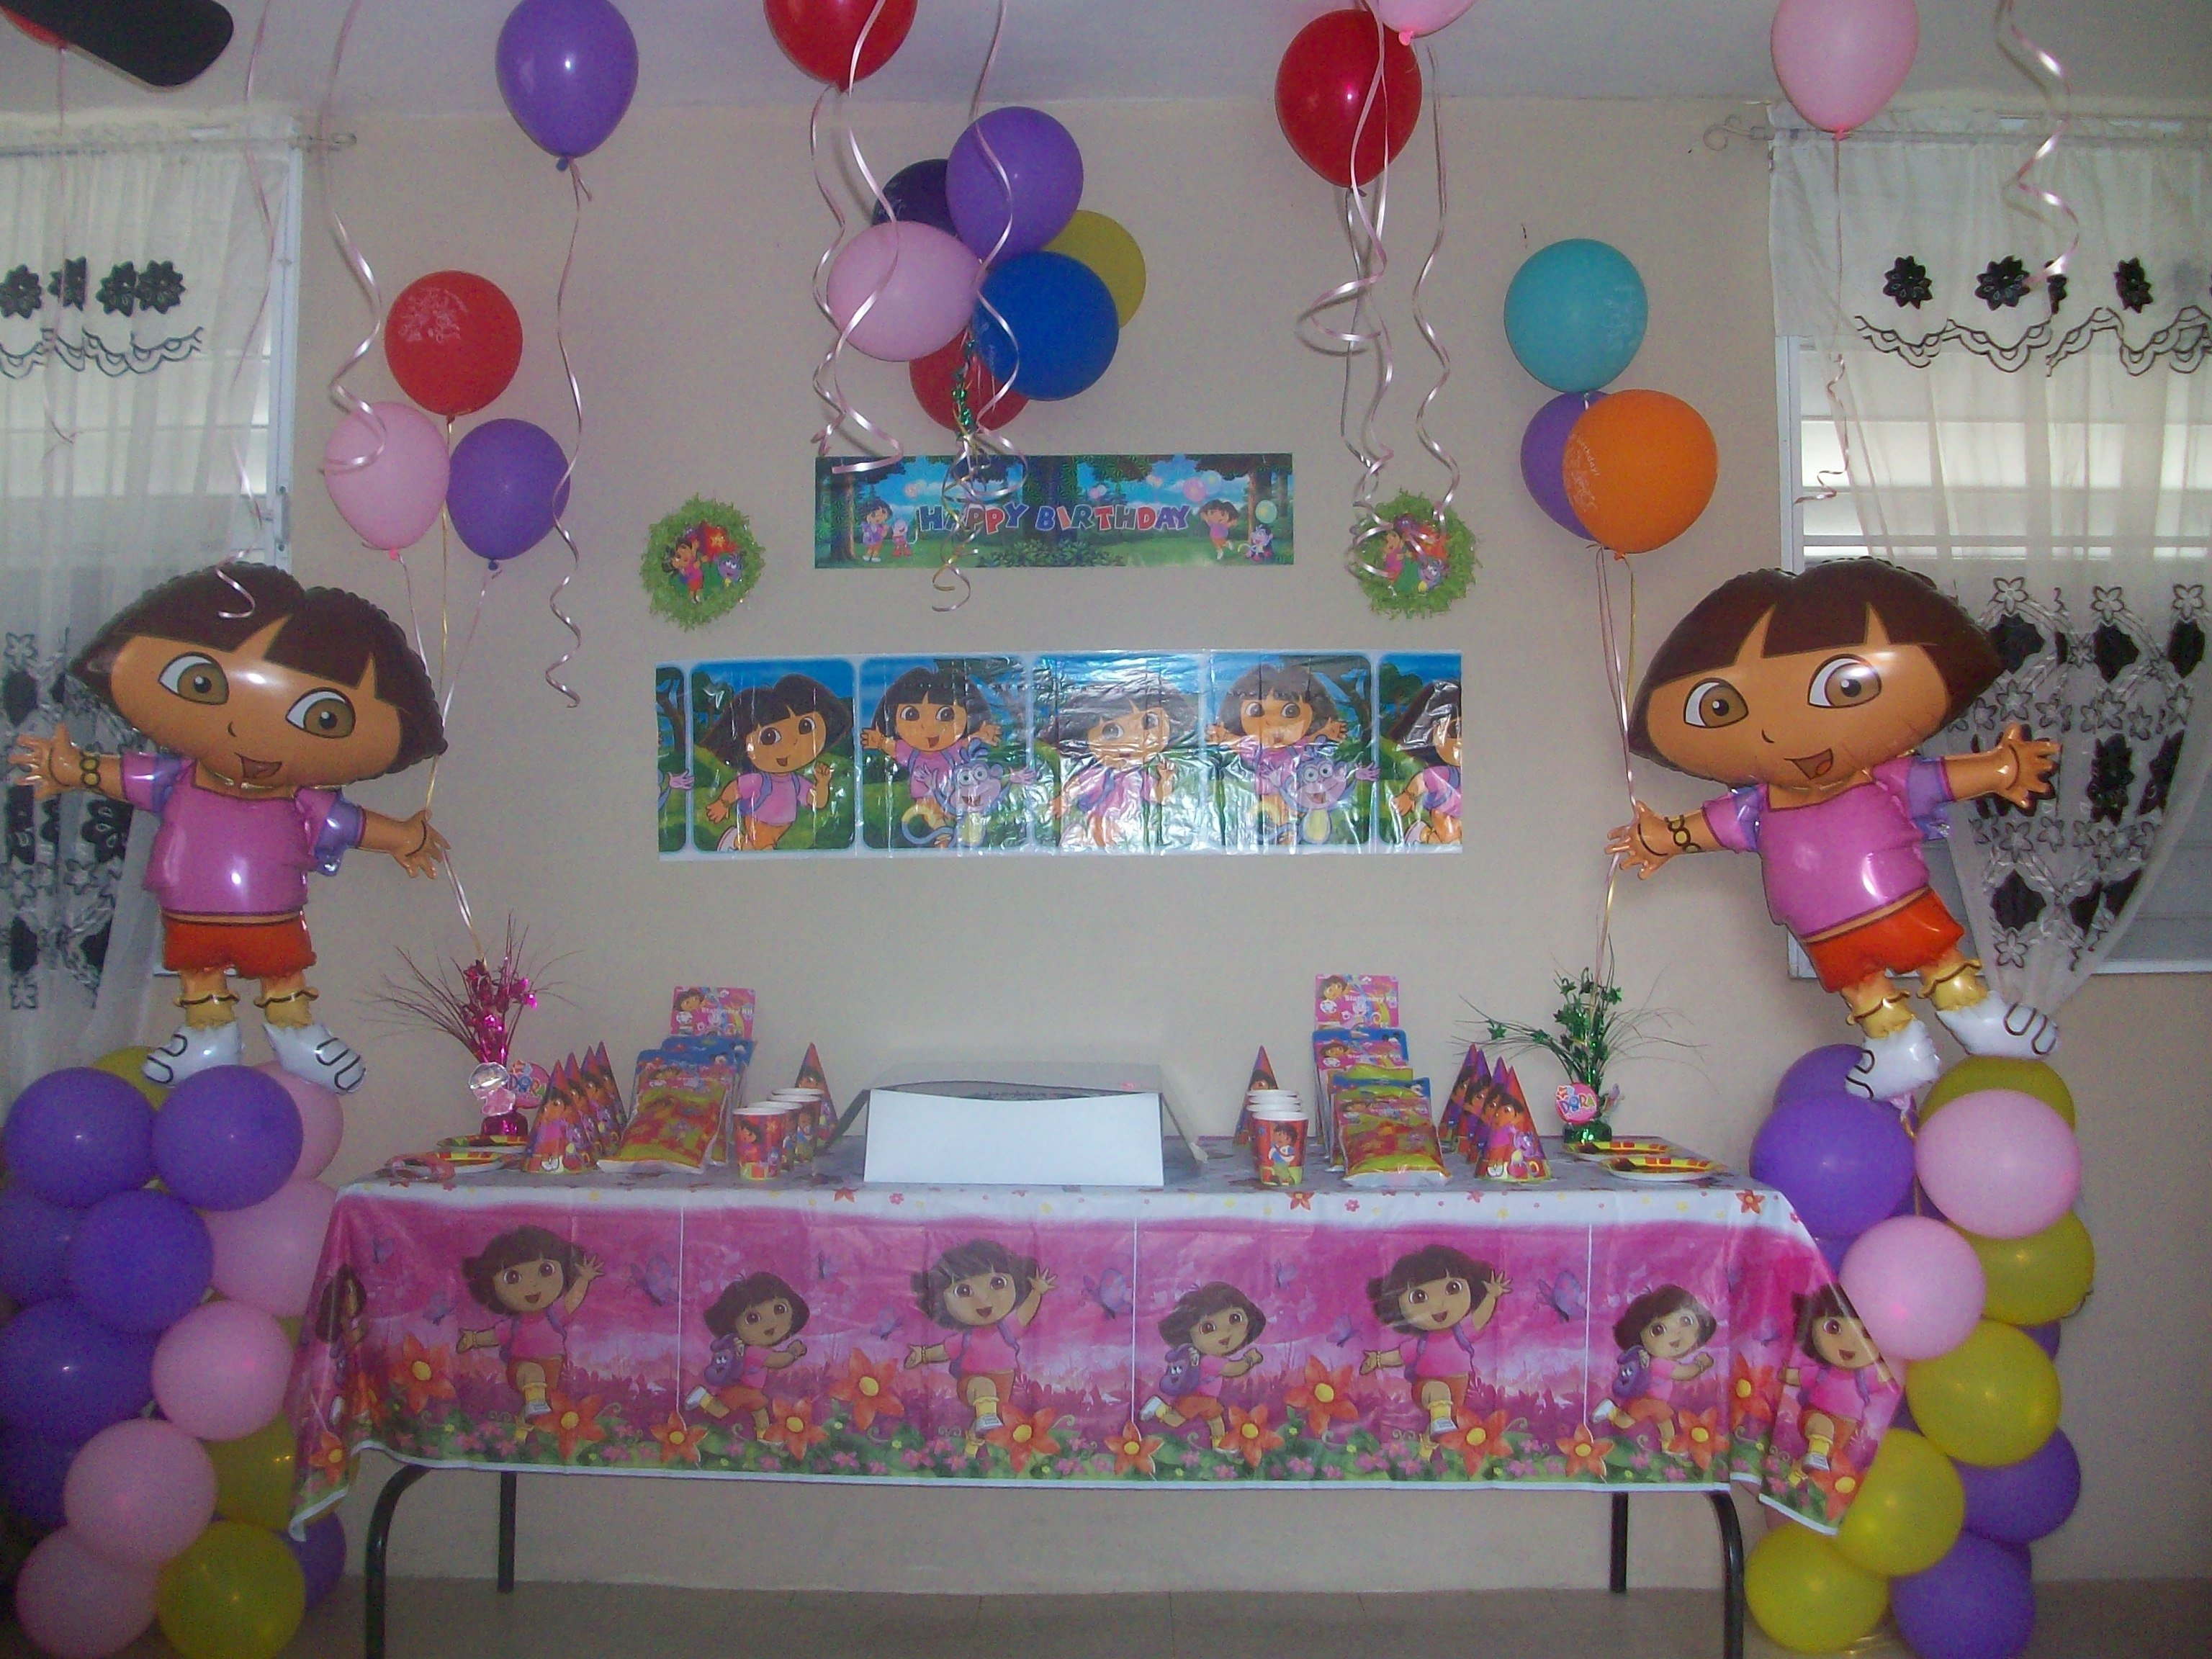 10 Awesome Three Year Old Birthday Party Ideas my daughters 3 year old birthday party party decor ideas 3 2021